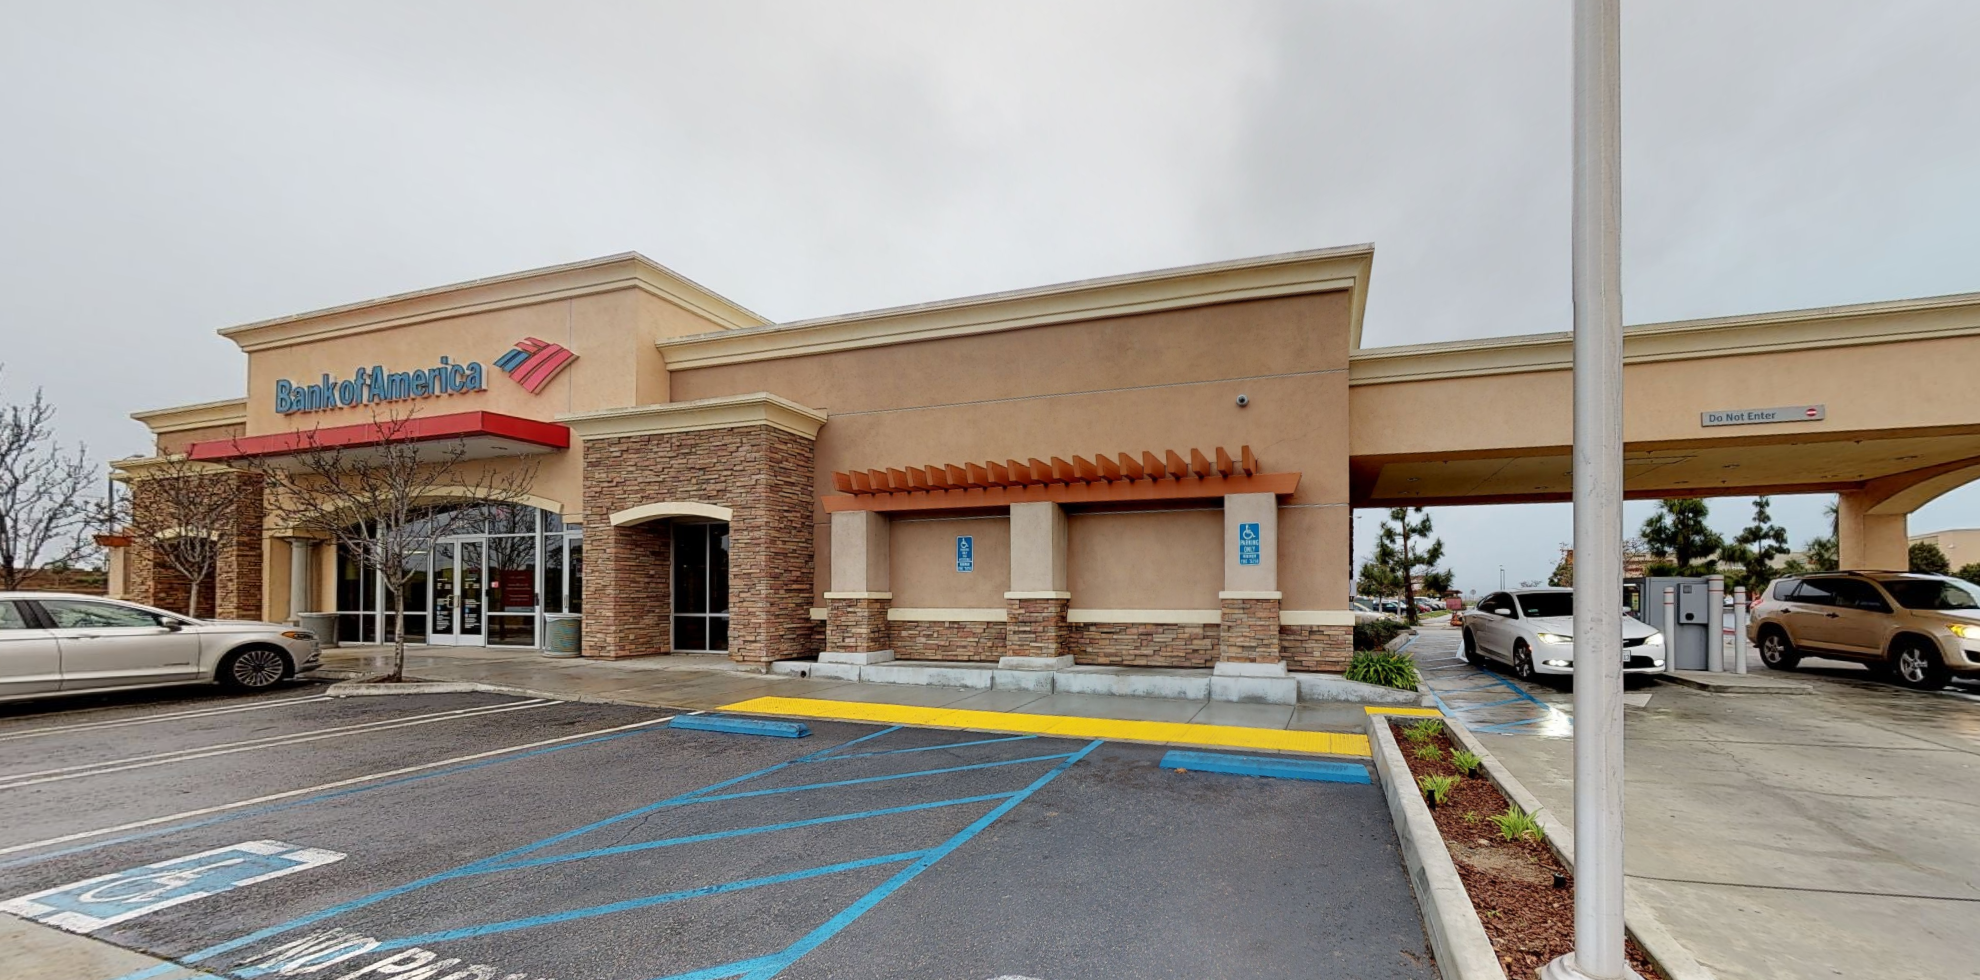 Bank of America financial center with drive-thru ATM | 3150 Case Rd Bldg G, Perris, CA 92570